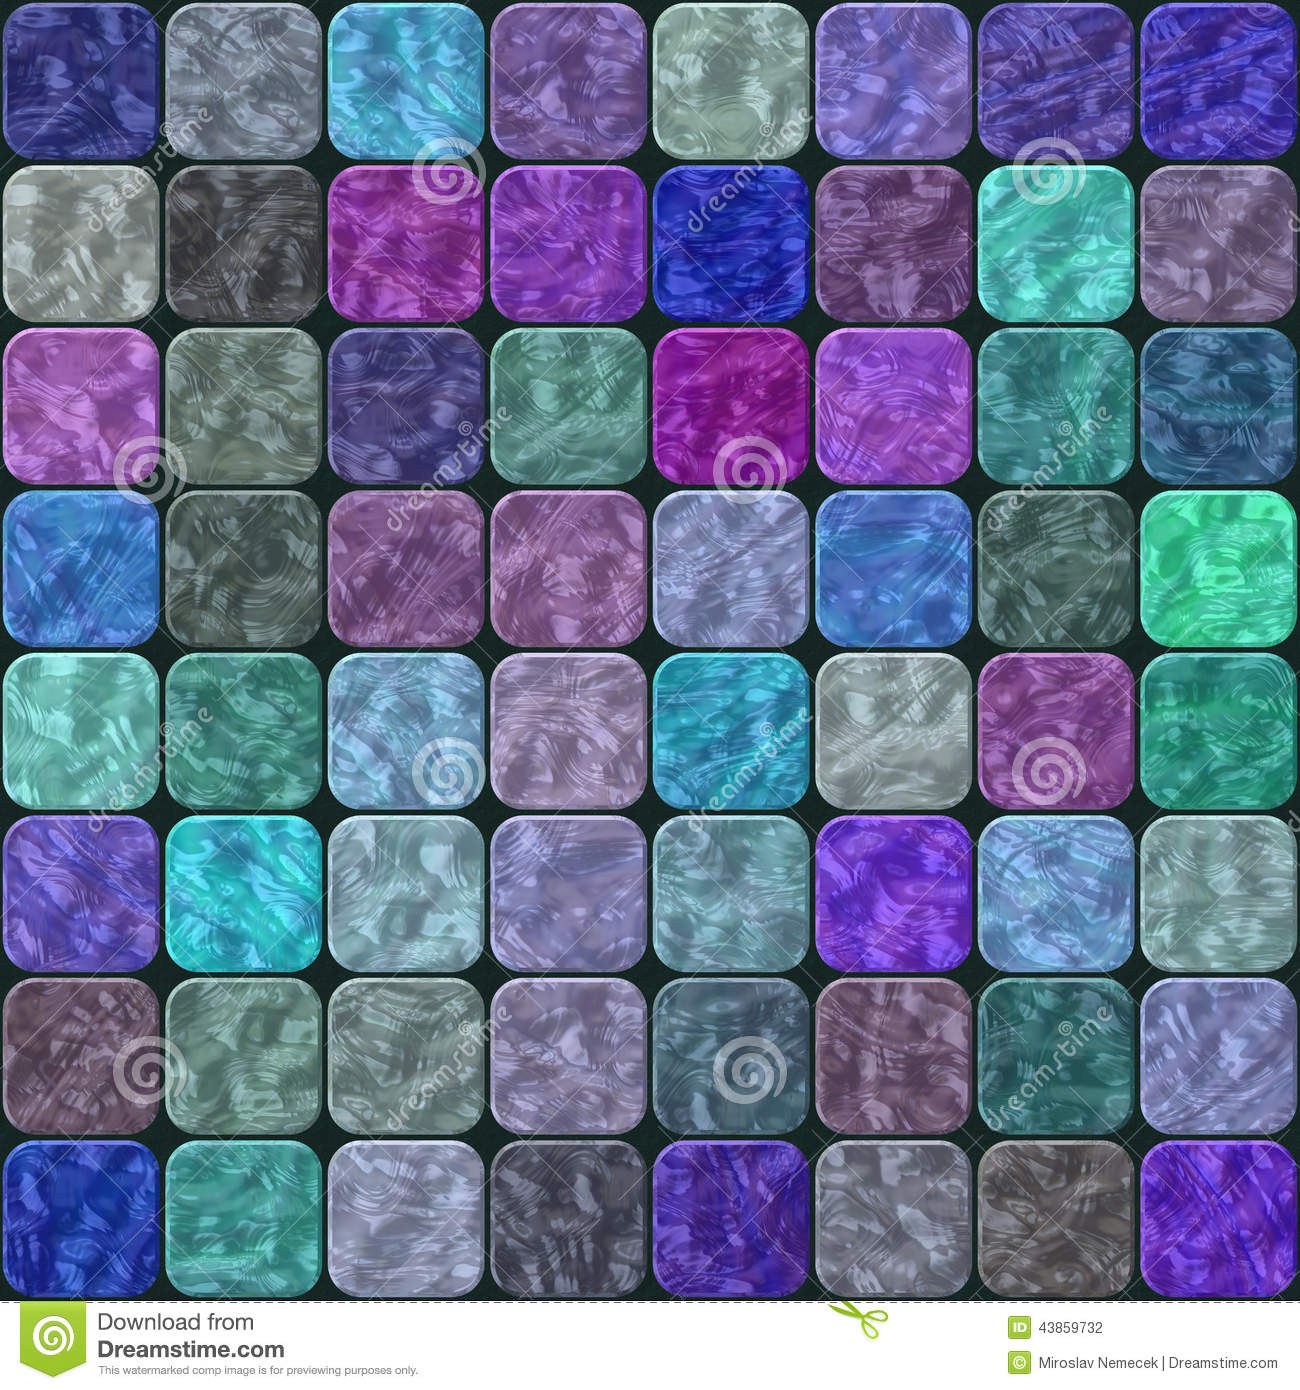 generated seamless tile background - photo #37